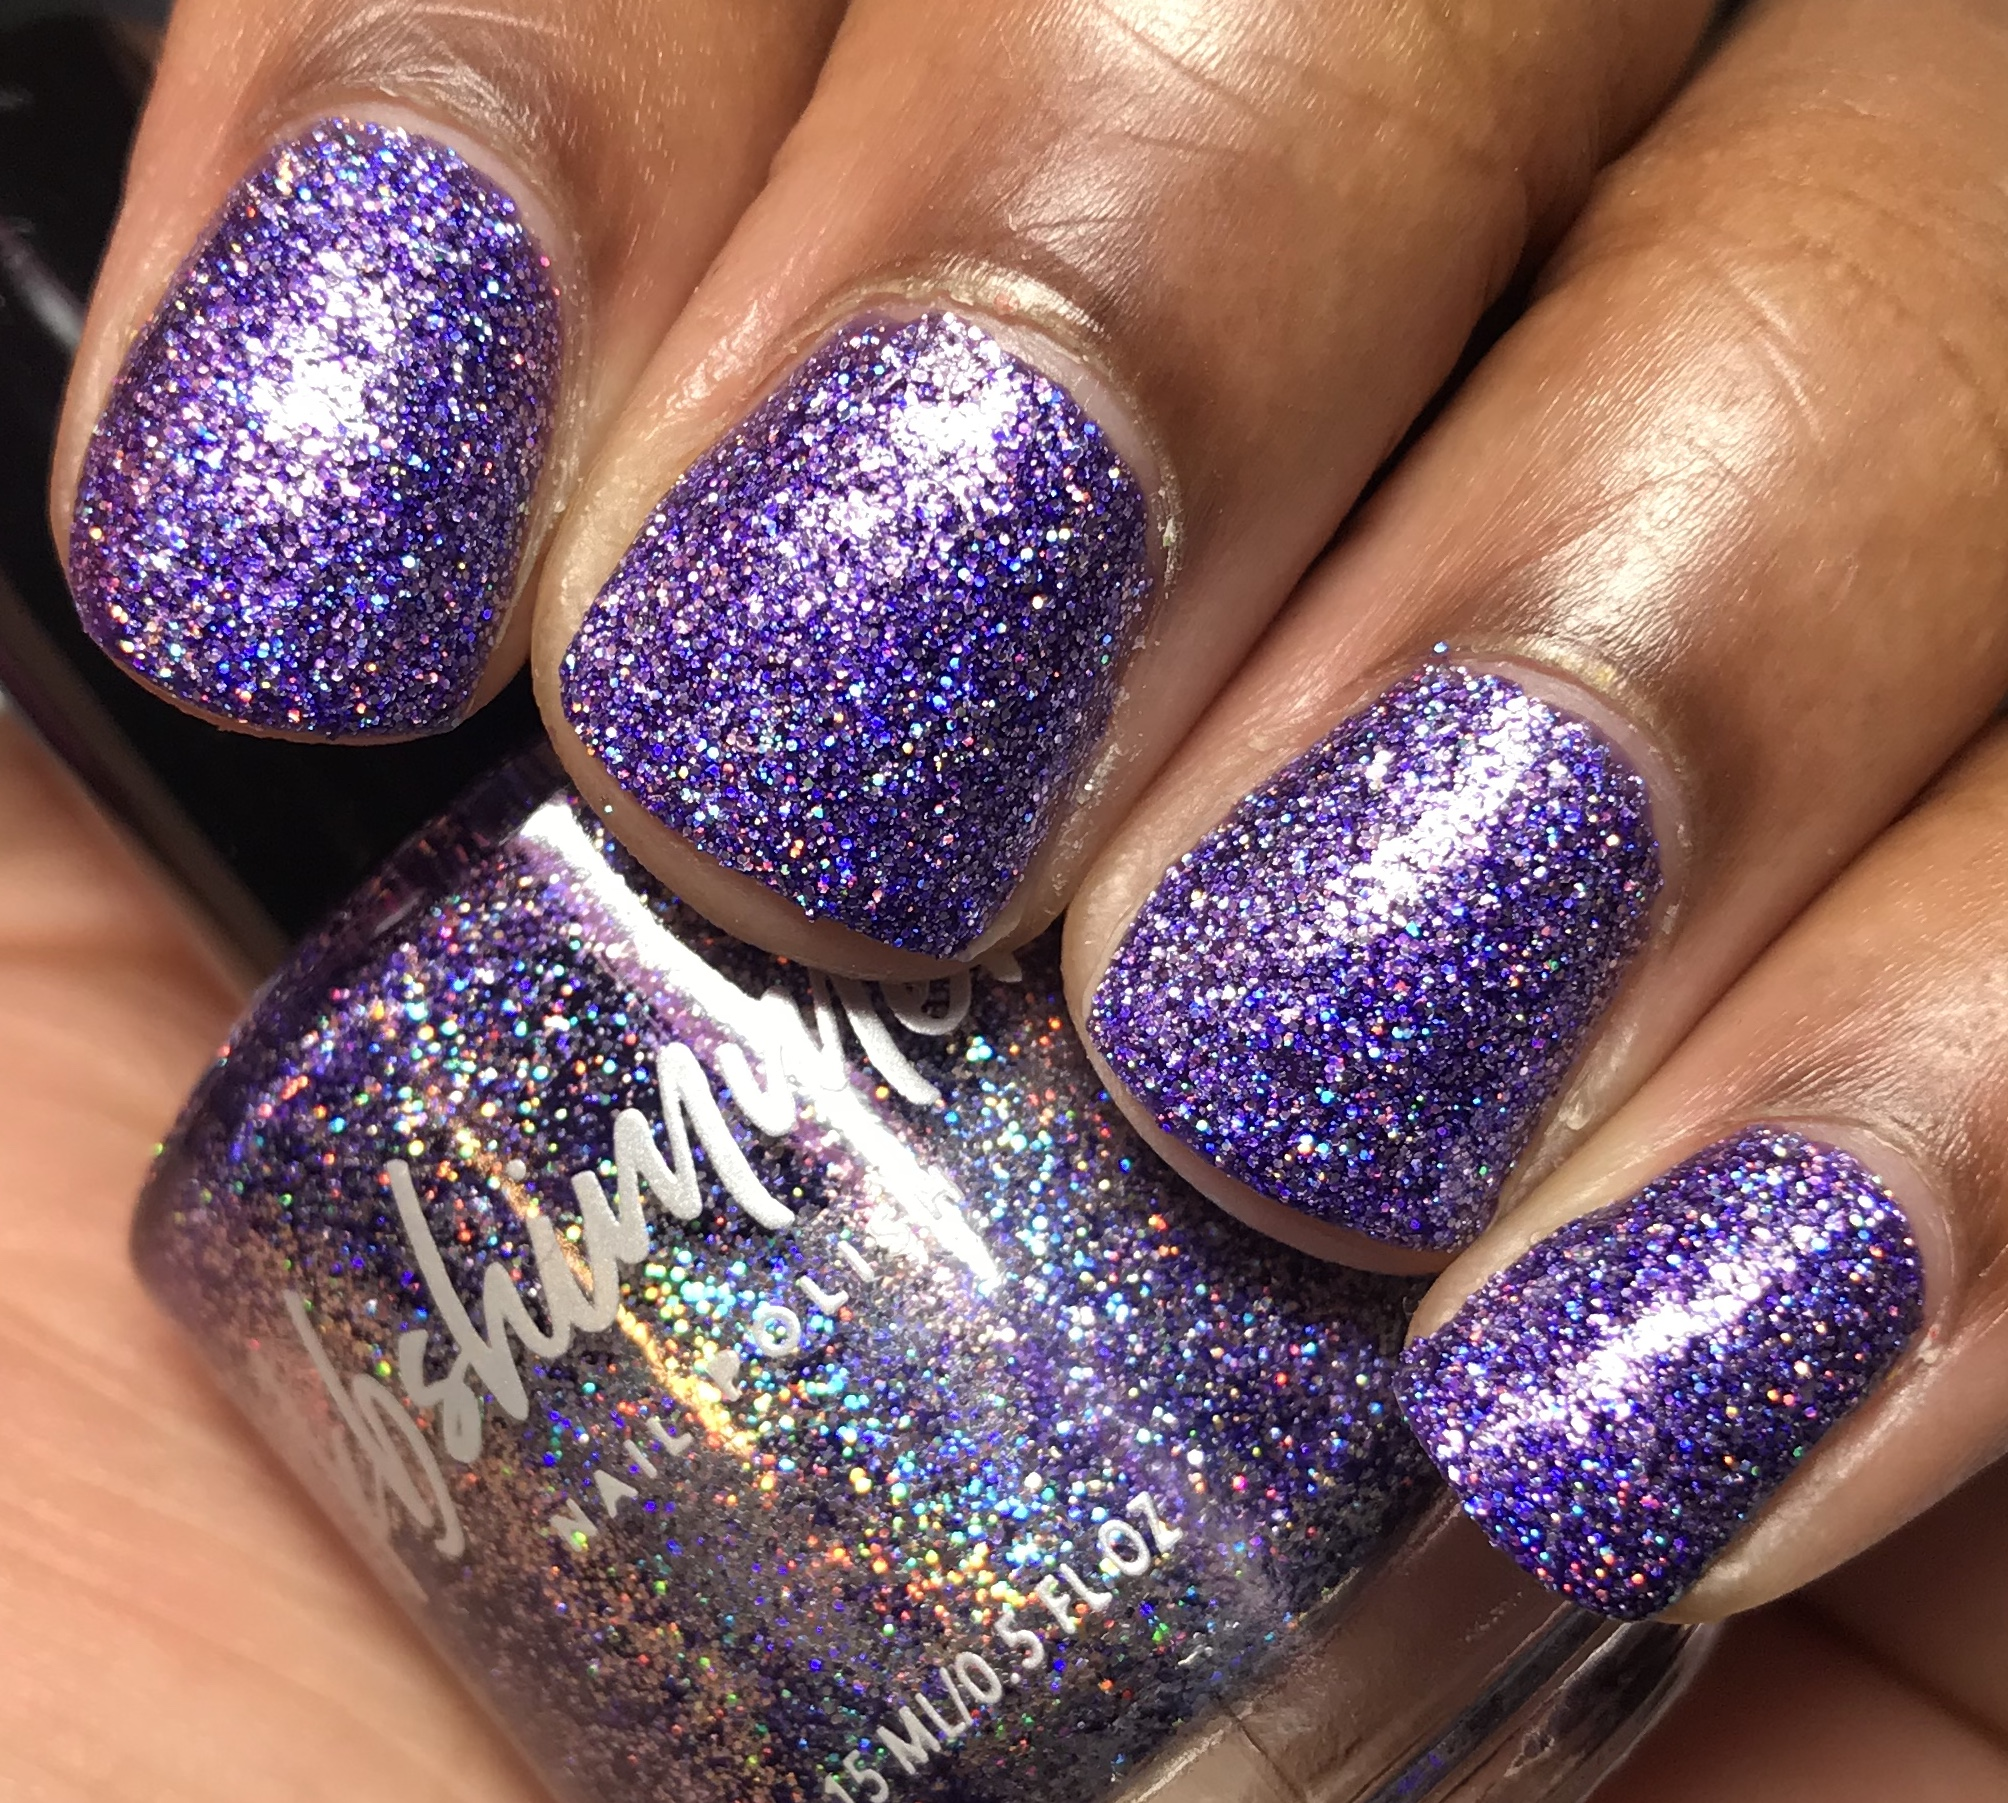 KBShimmer Best Witches Mega Flame Holographic Nail Polish